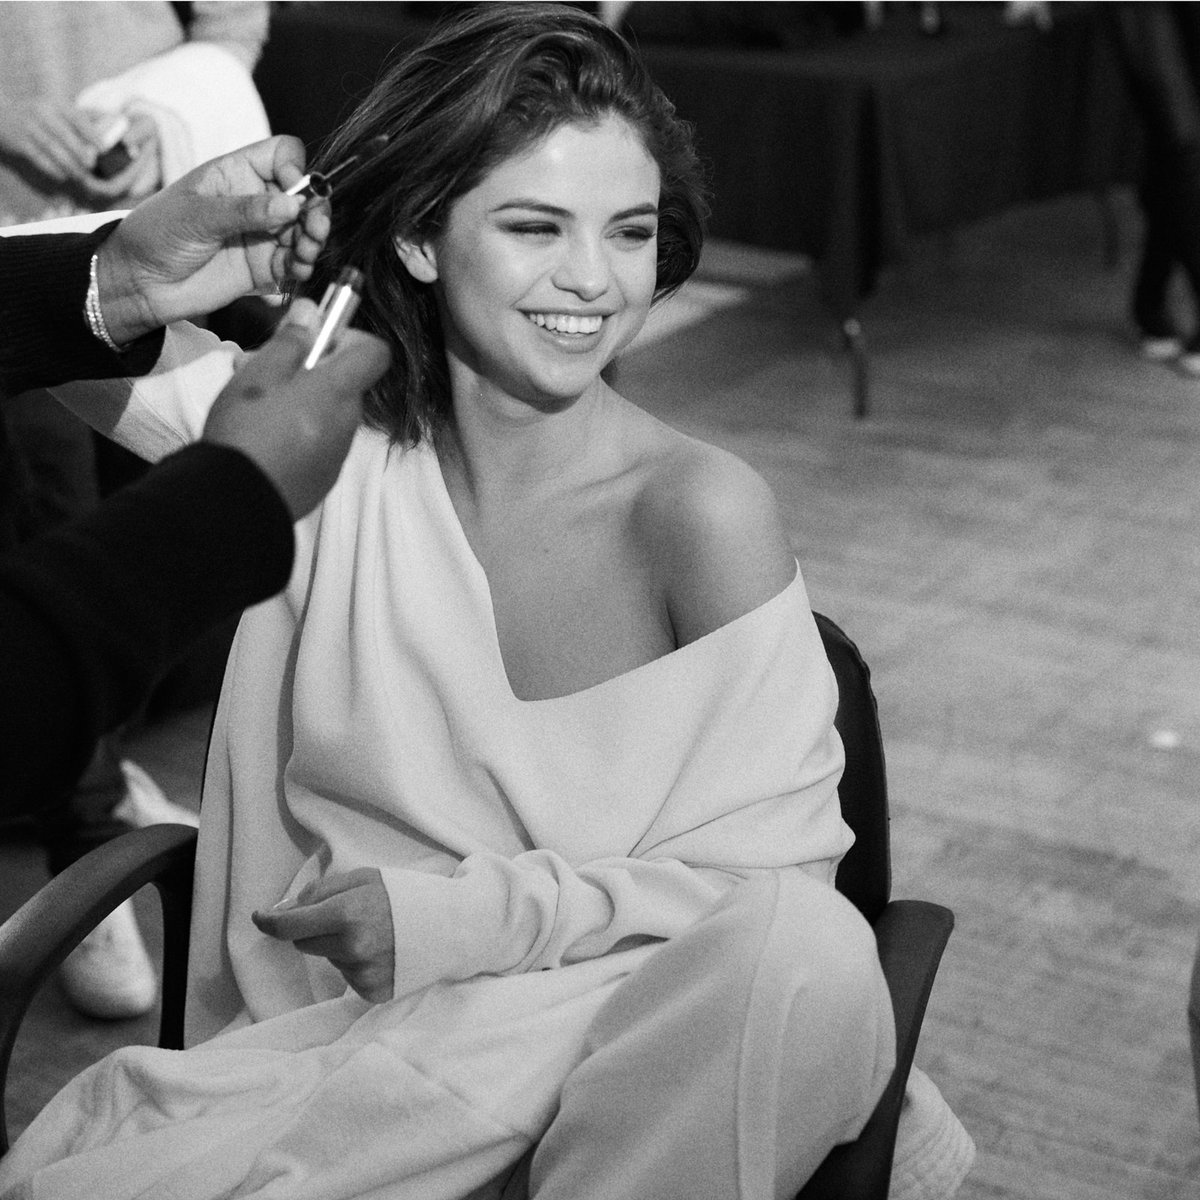 In the hot seat with #SelenaGomez behind the scenes of our fall campaign. #CoachxSelena #CoachNY